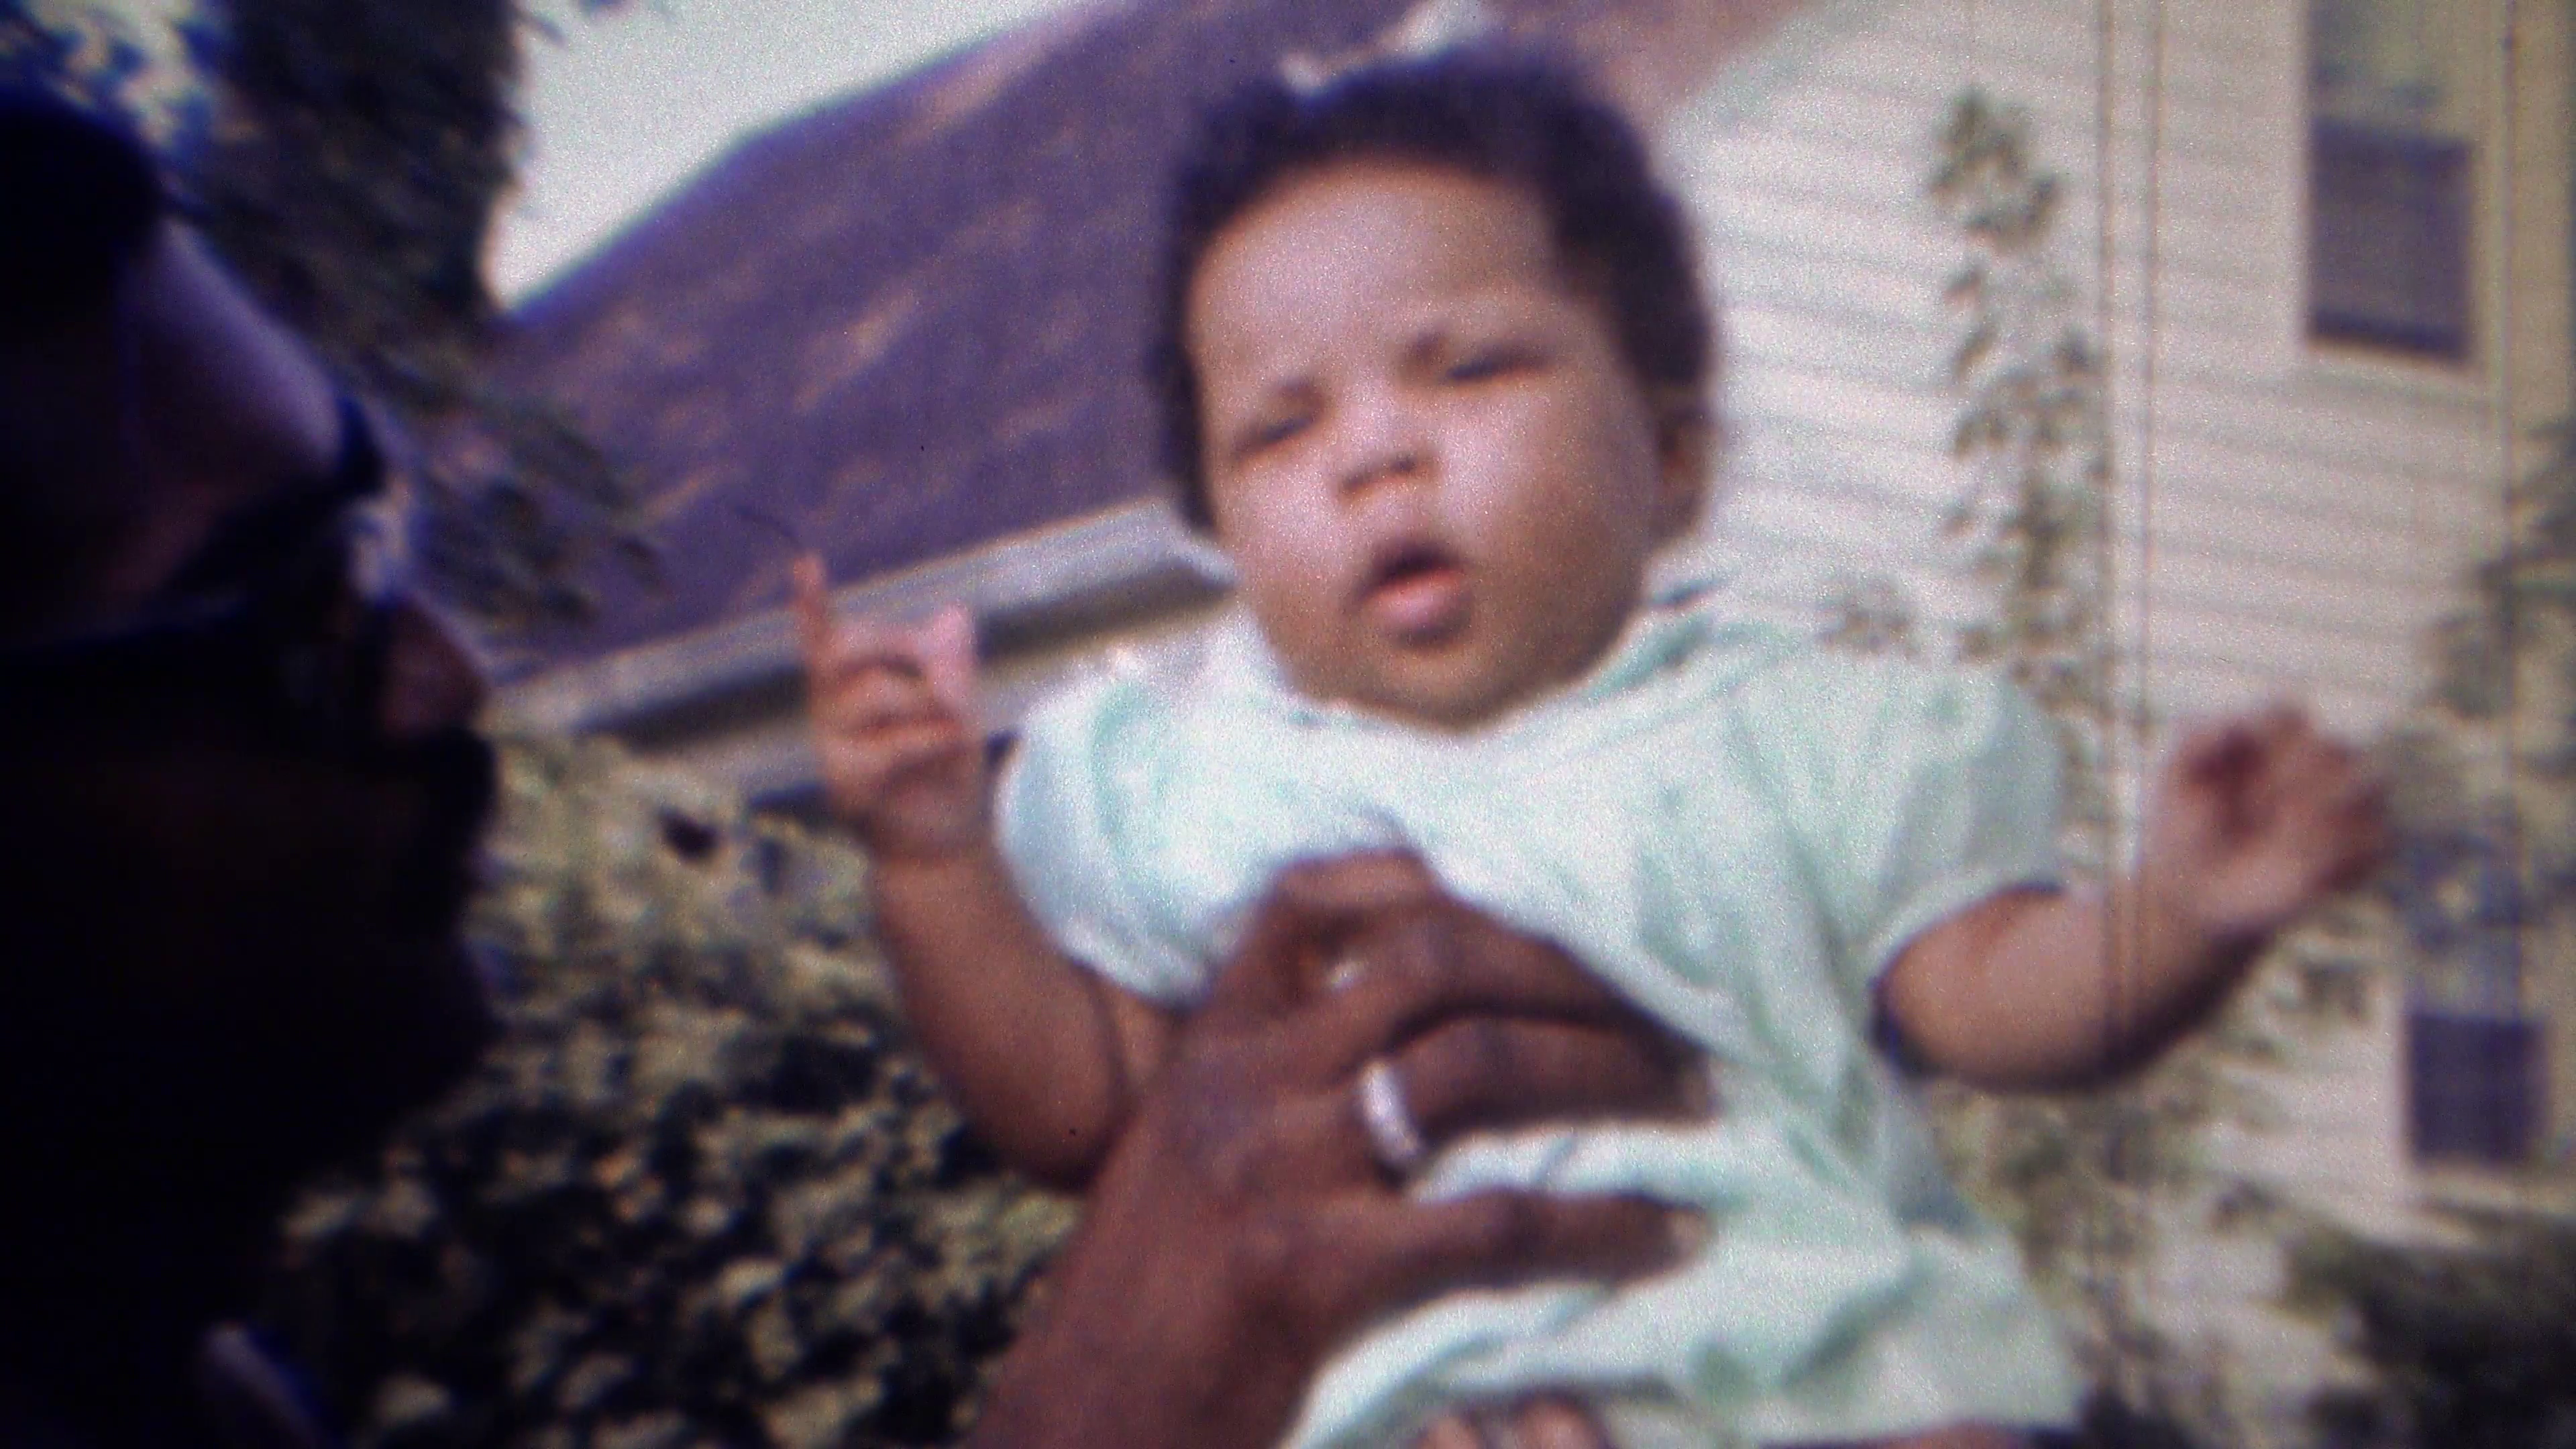 1967: Proud African American dad holds up new baby girl. CARMEL, INDIANA  Stock Video Footage - VideoBlocks - African American Dad PNG